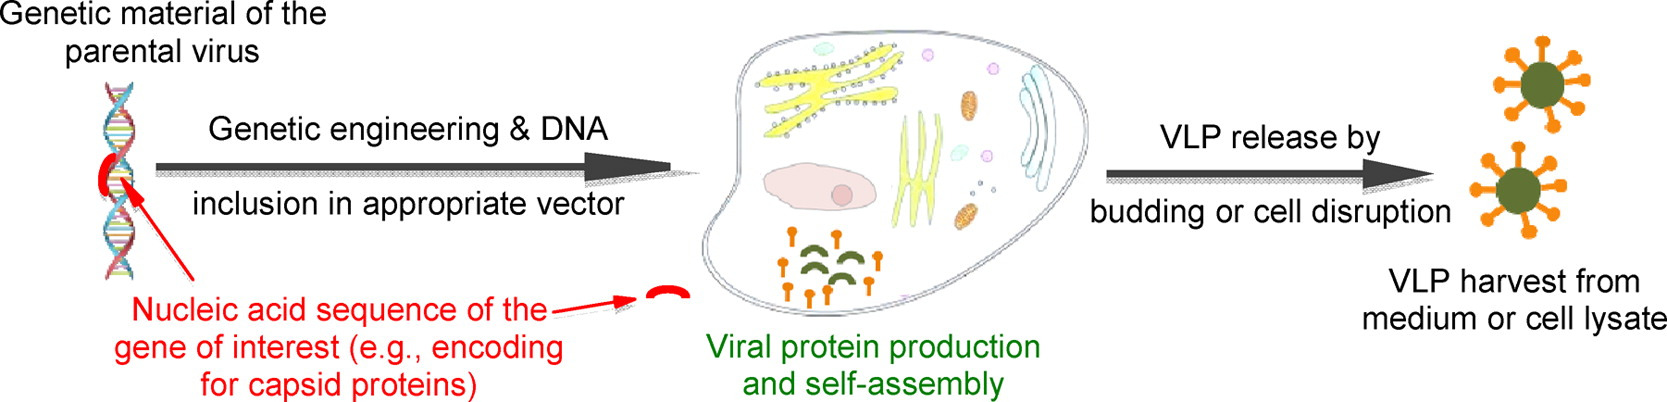 Figure 1: Production of Virus Like Particles in yeast cells. From Vacher, Kaeser, Moser, Gurny, & Borchard, 2013.